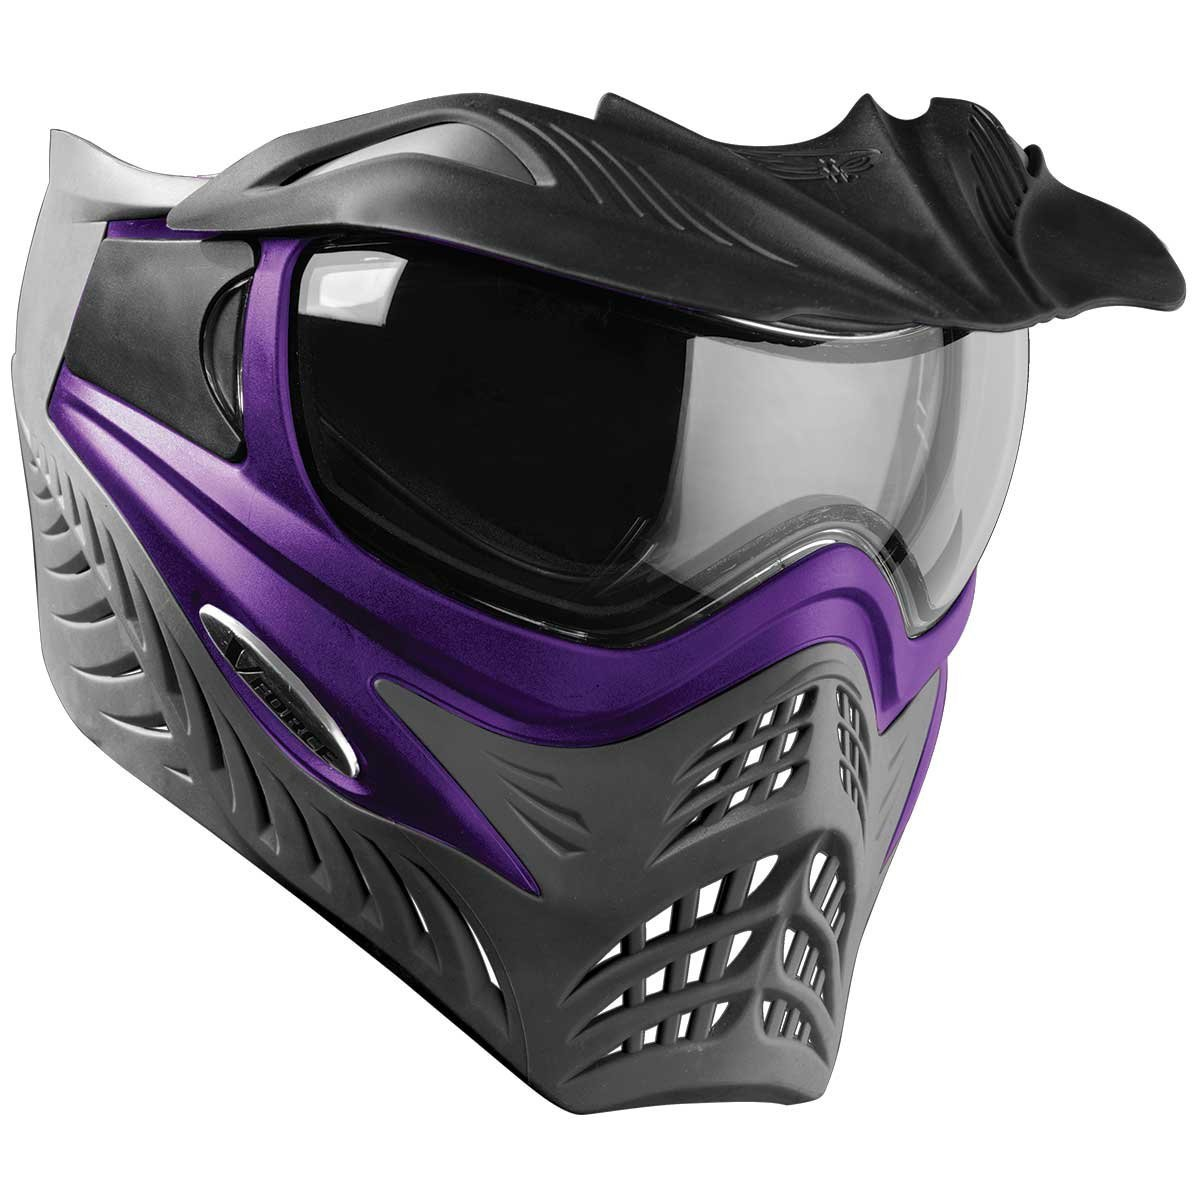 V-FORCE Grill Paintball Mask / Goggle - Purple on Grey